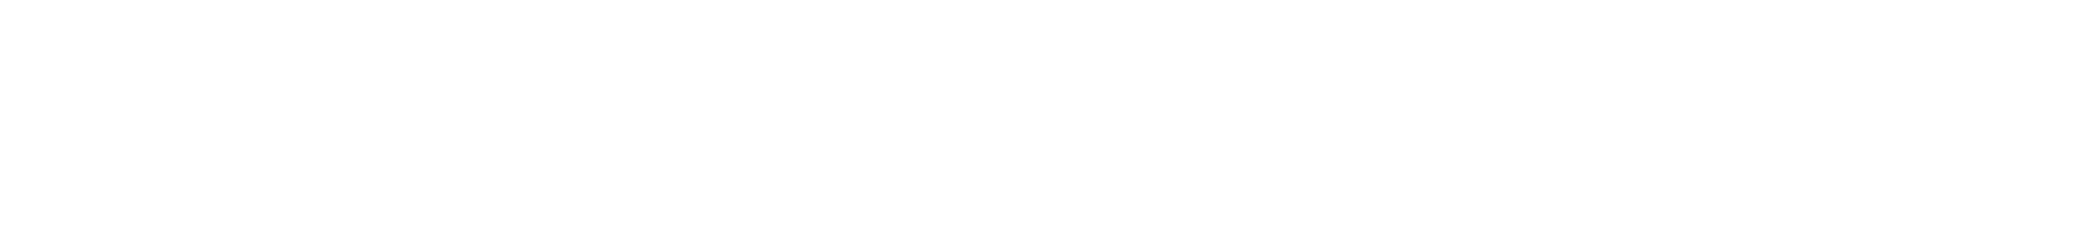 Center for Energy, Environment & Sustainability Logo